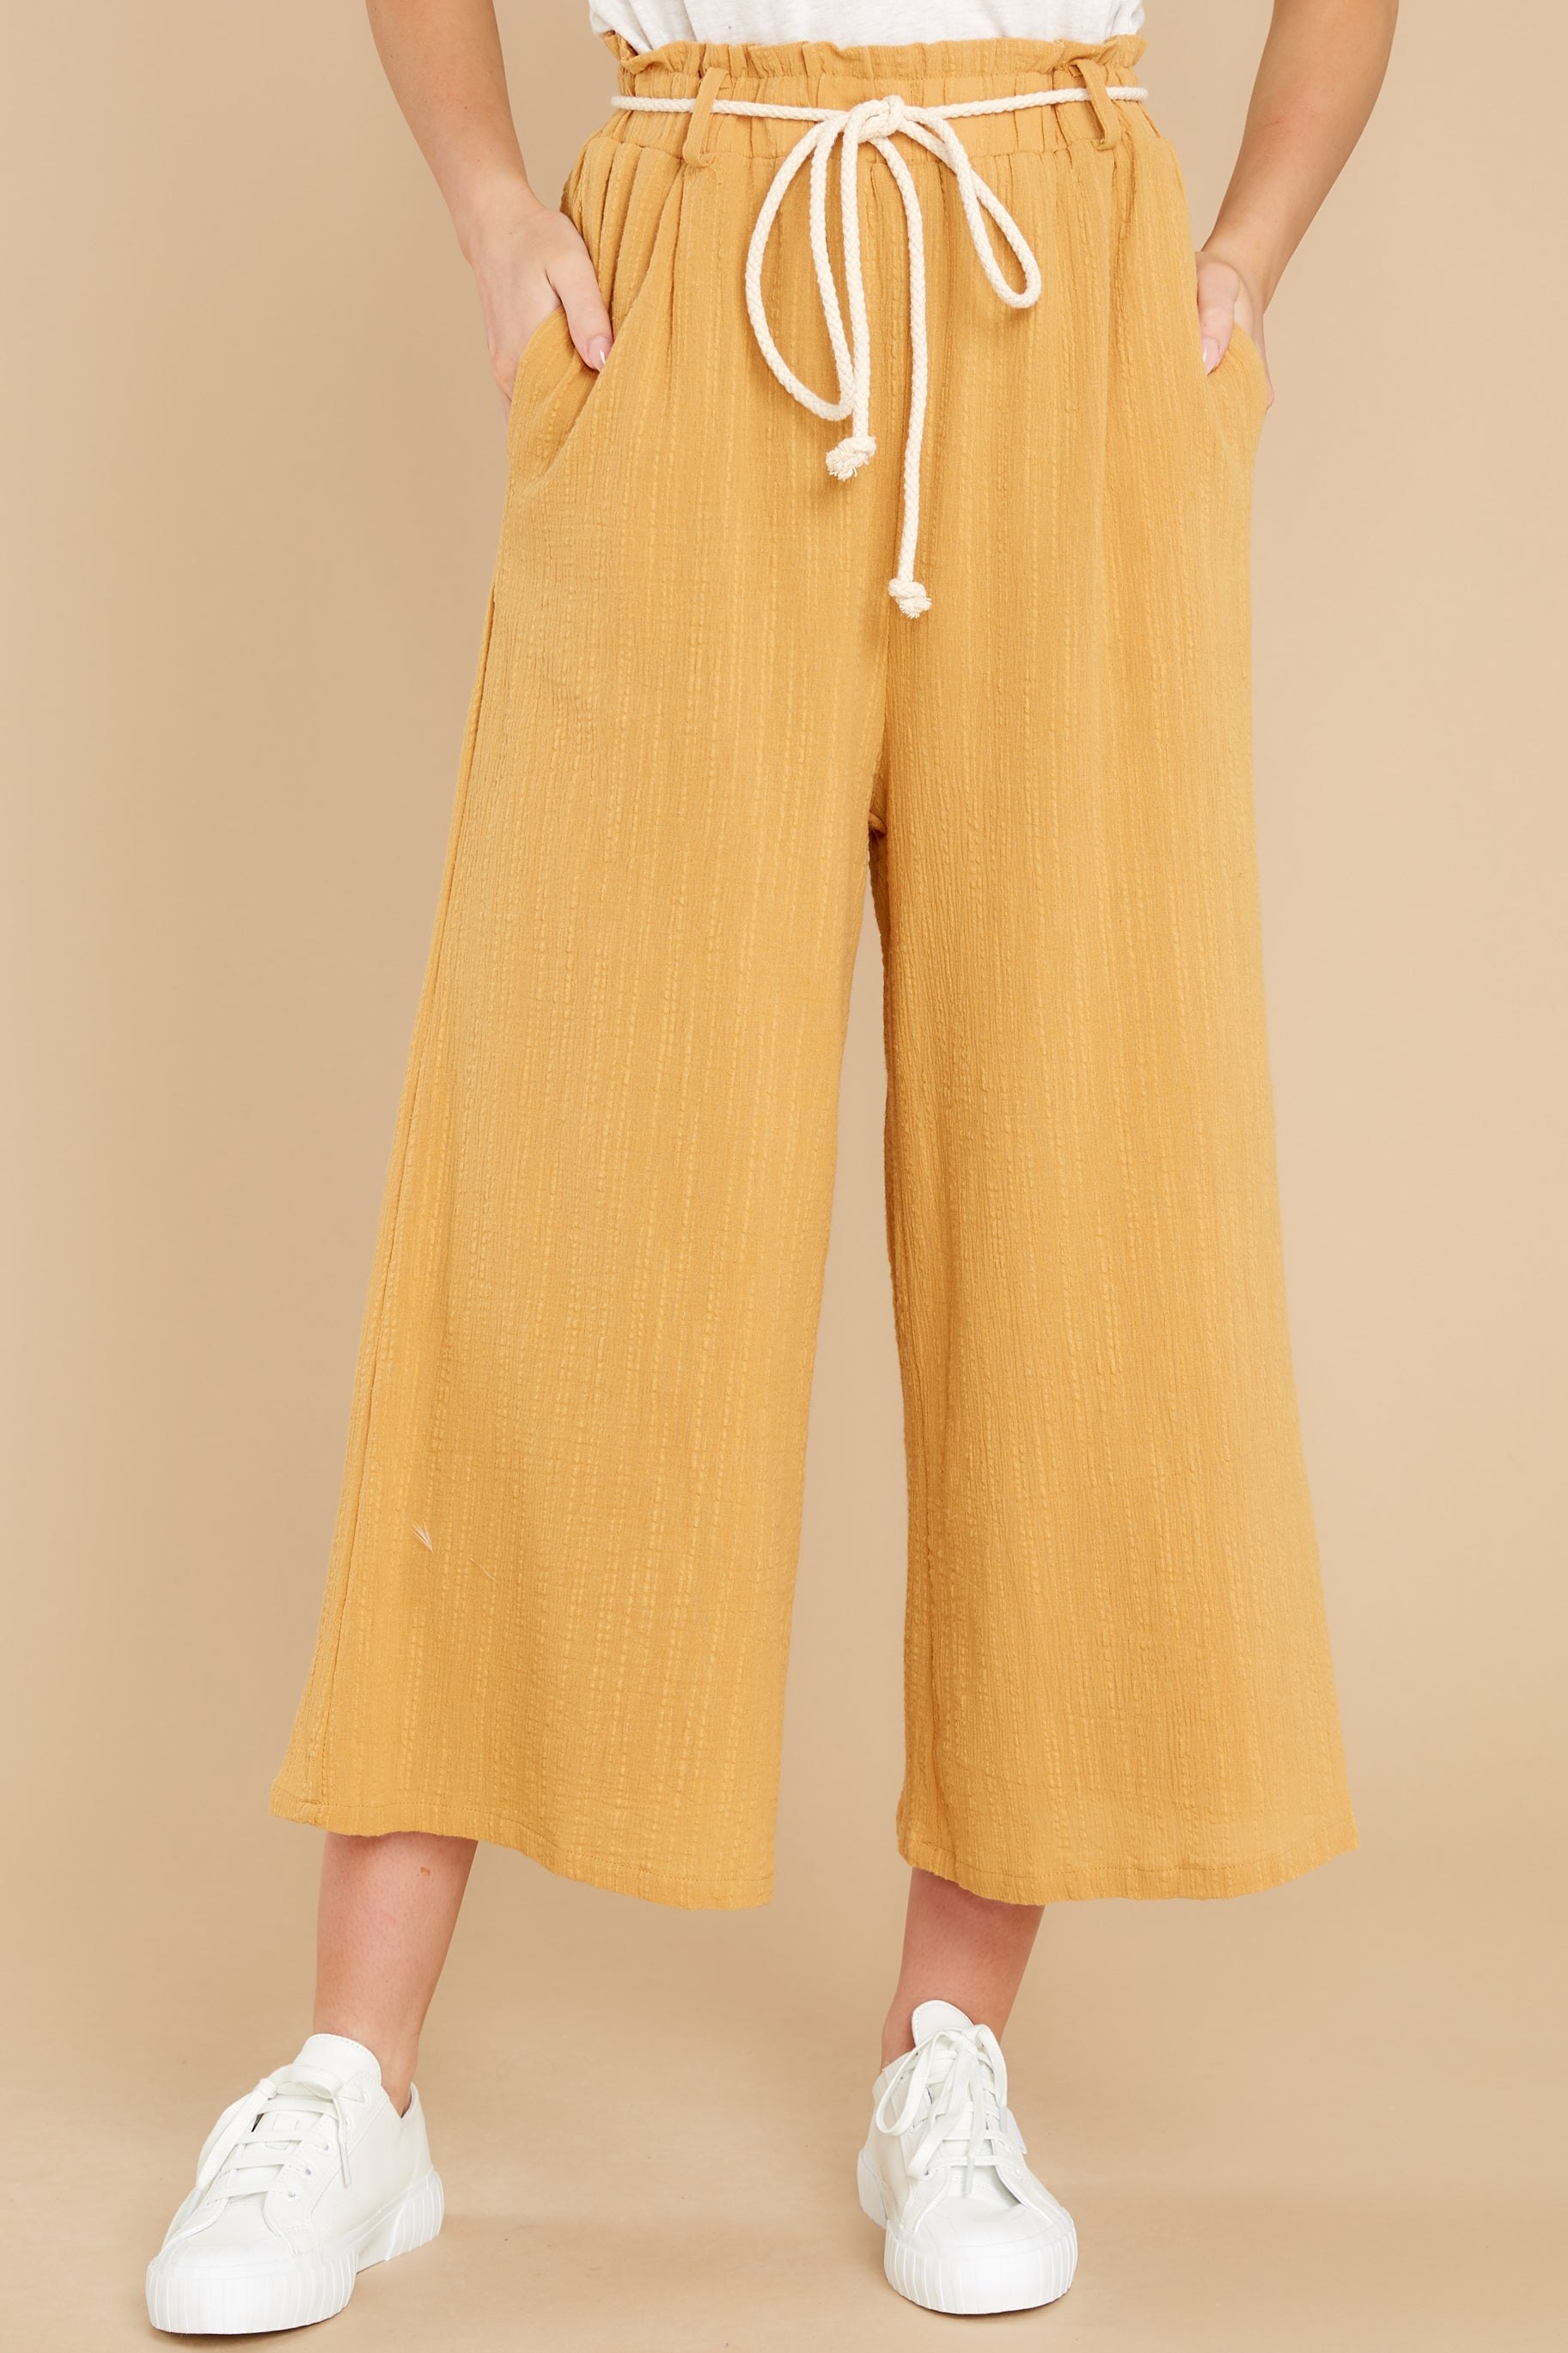 2 Eternal Bliss Mustard Pants at reddress.com